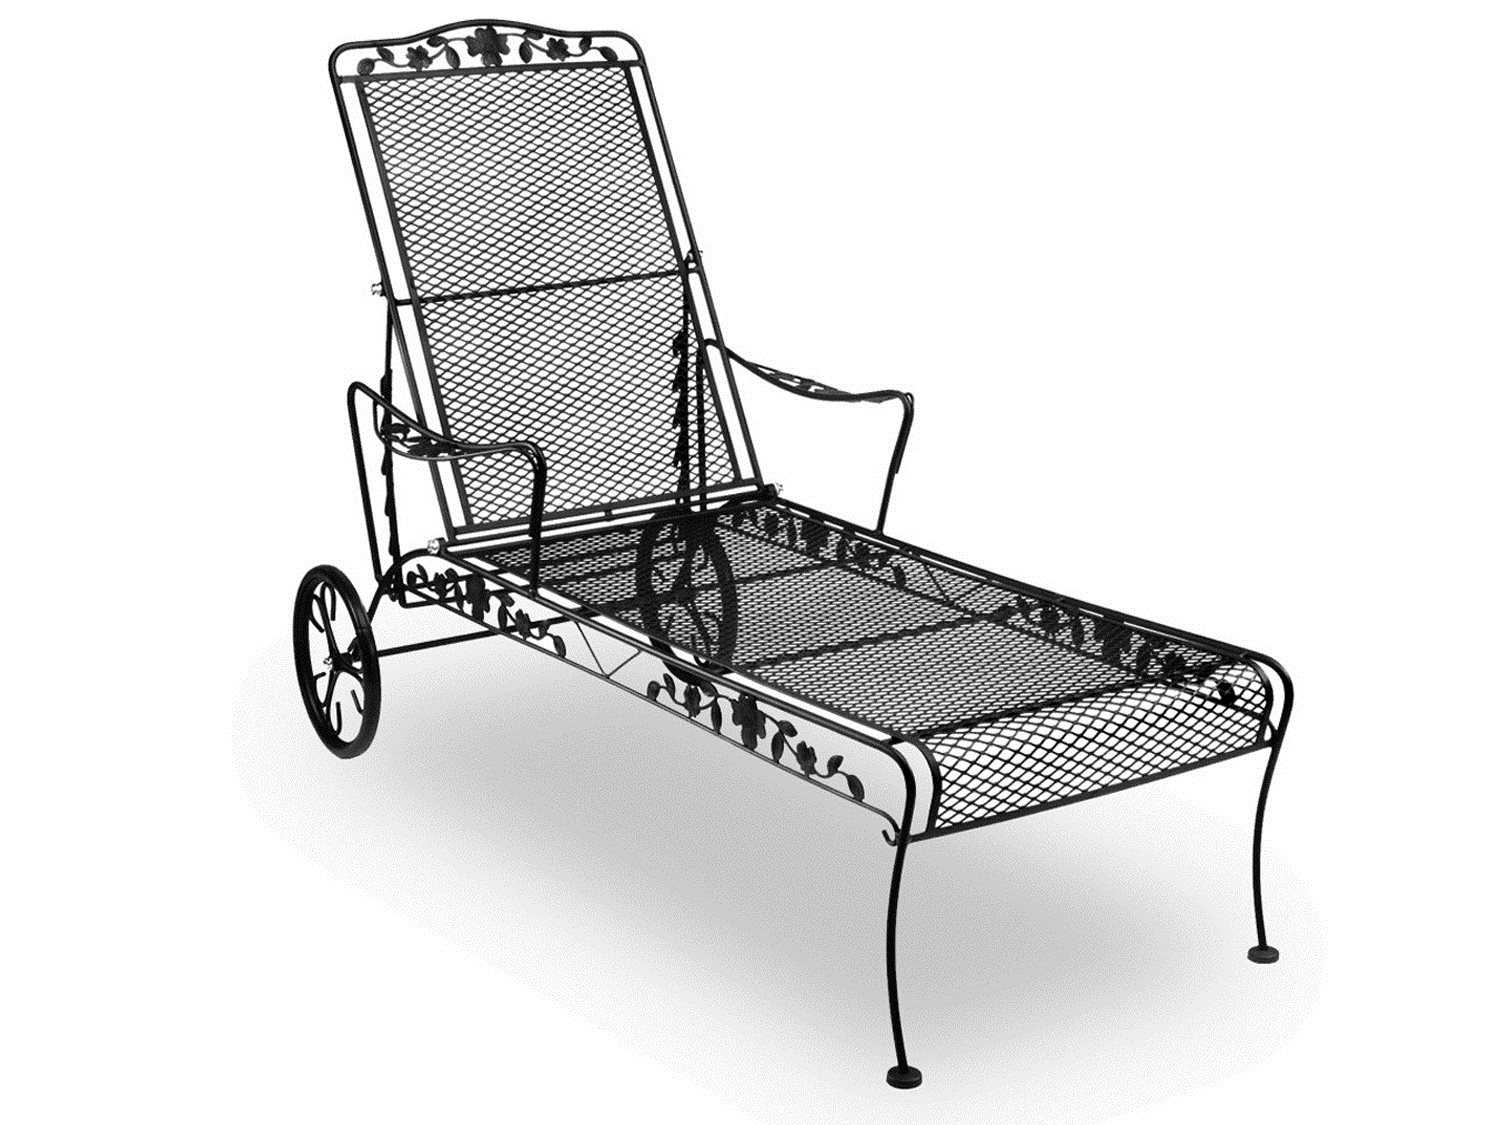 Meadowcraft dogwood wrought iron chaise lounge 7615400 01 for Black wrought iron chaise lounge